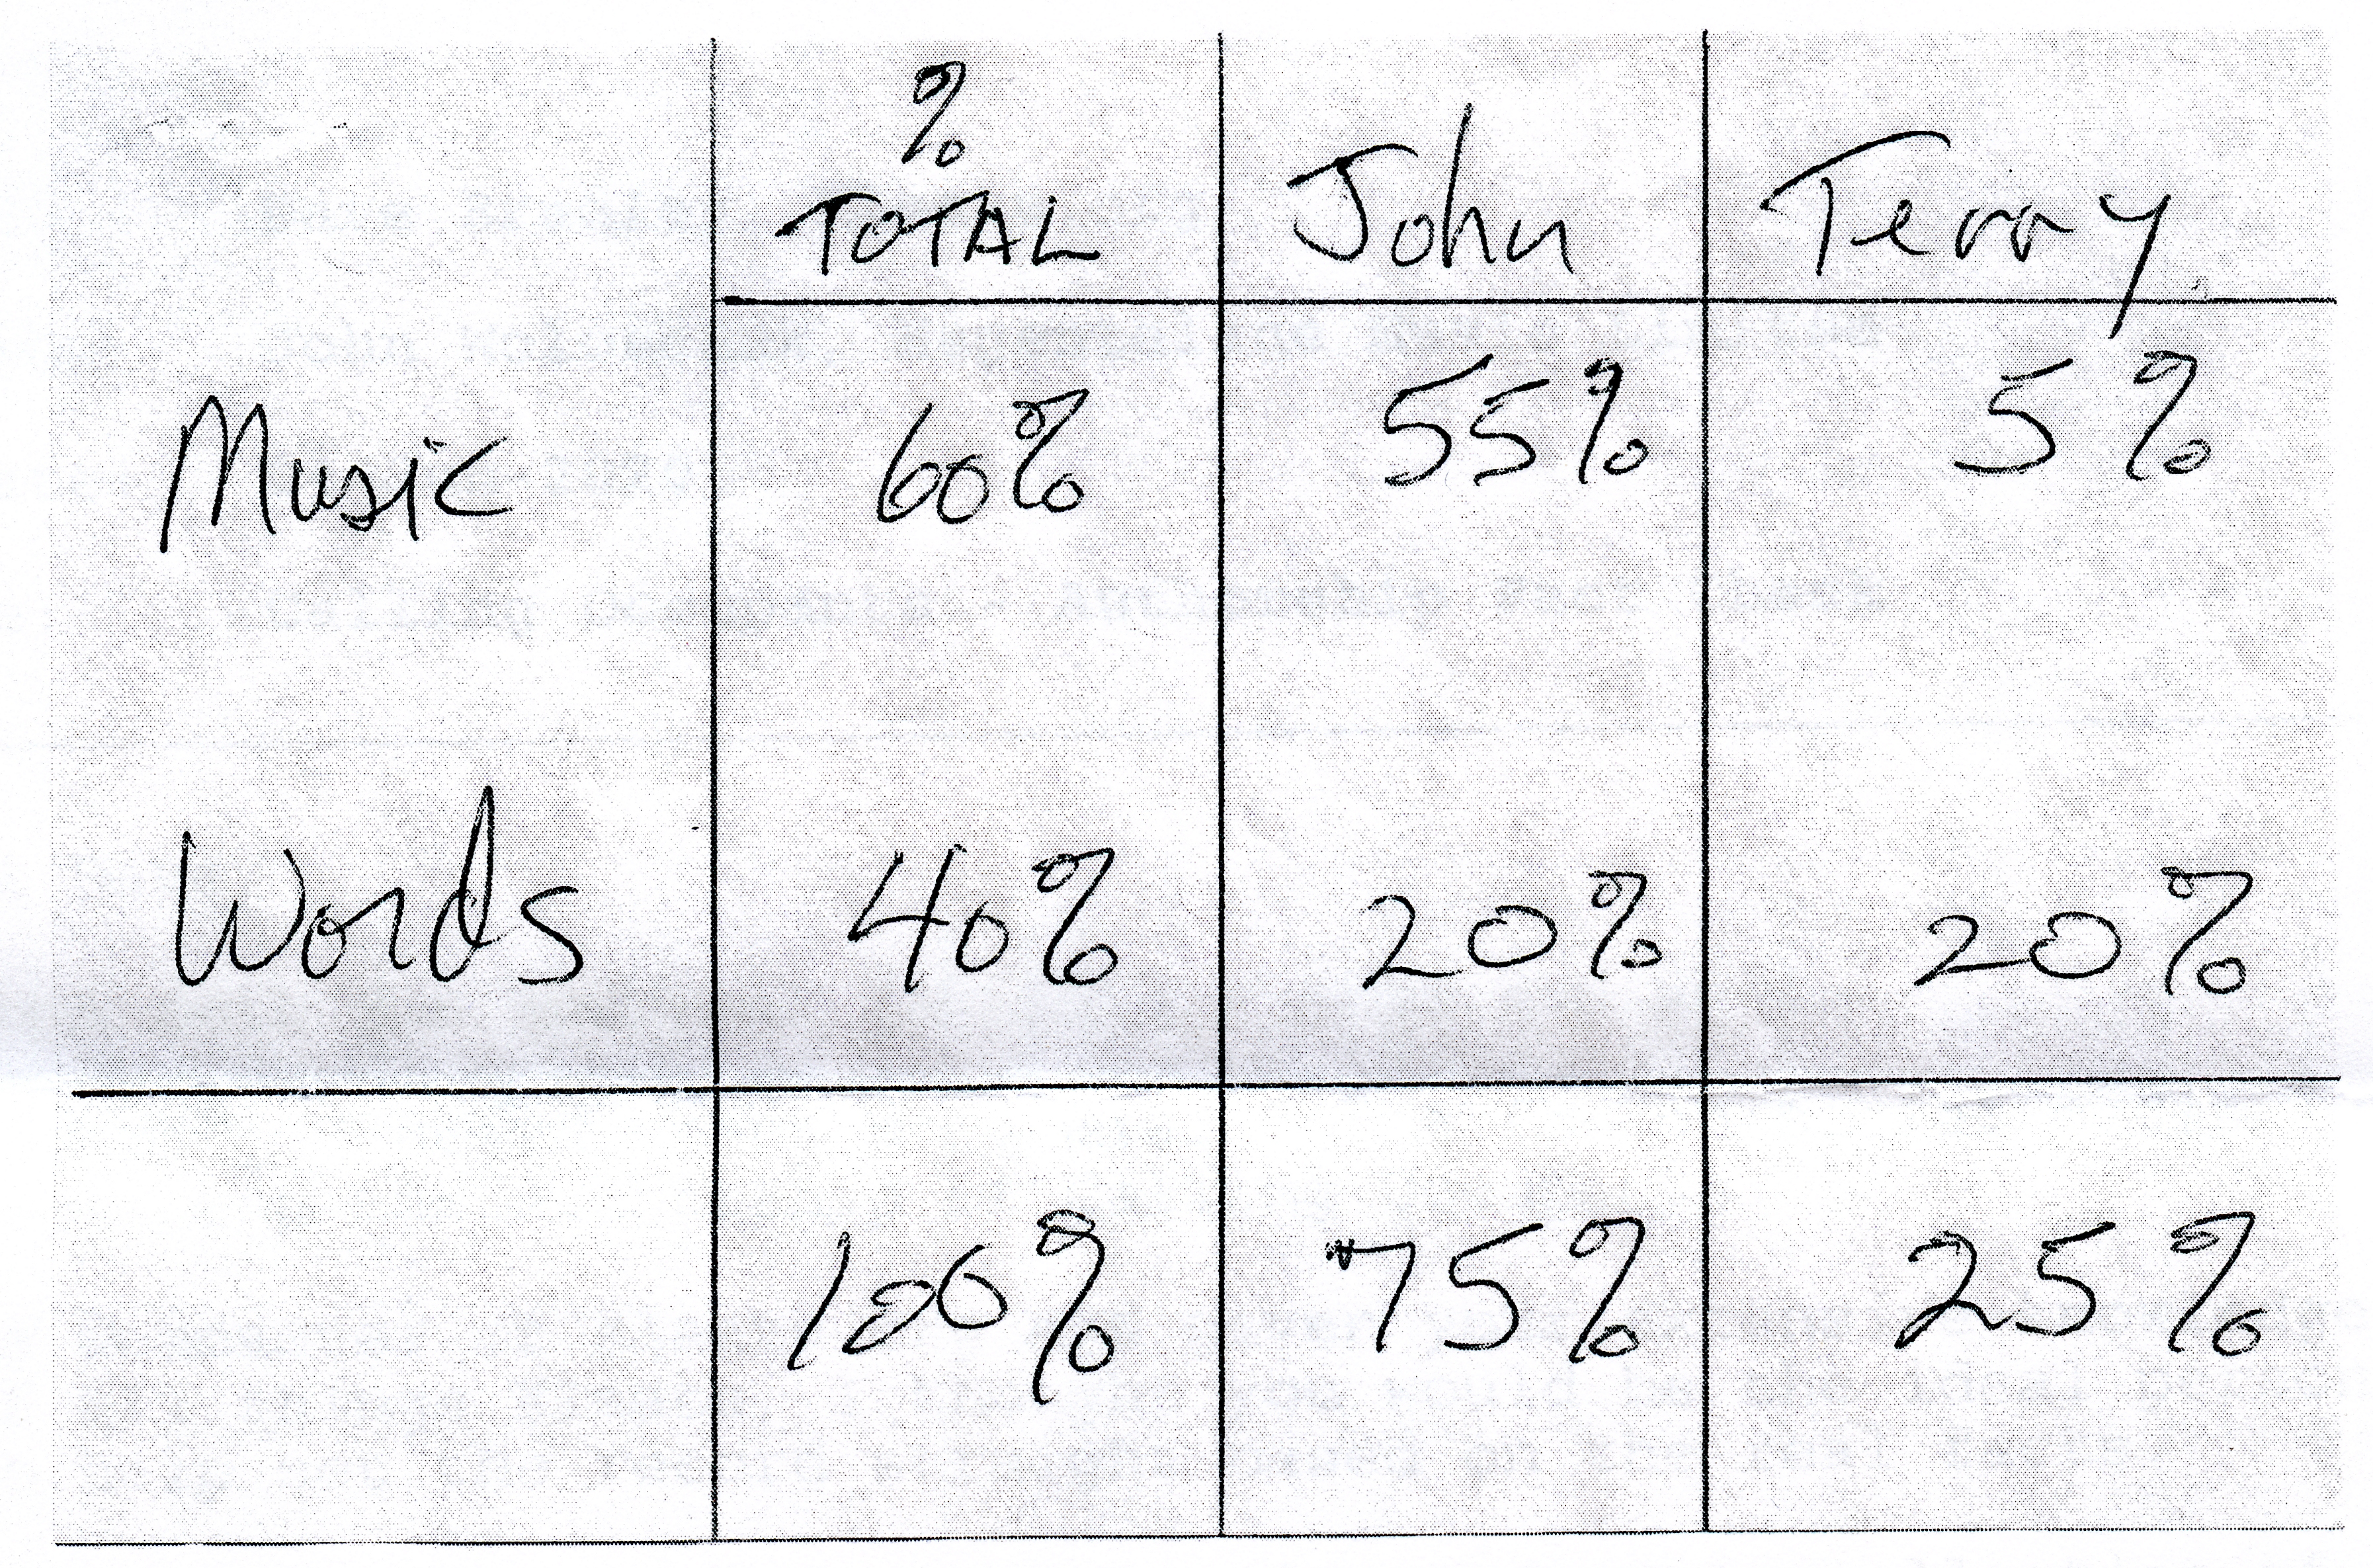 This is a scanned image of the handwritten calculations John and Terry used for the songwriting/publishing royalties for Calling Occupants.